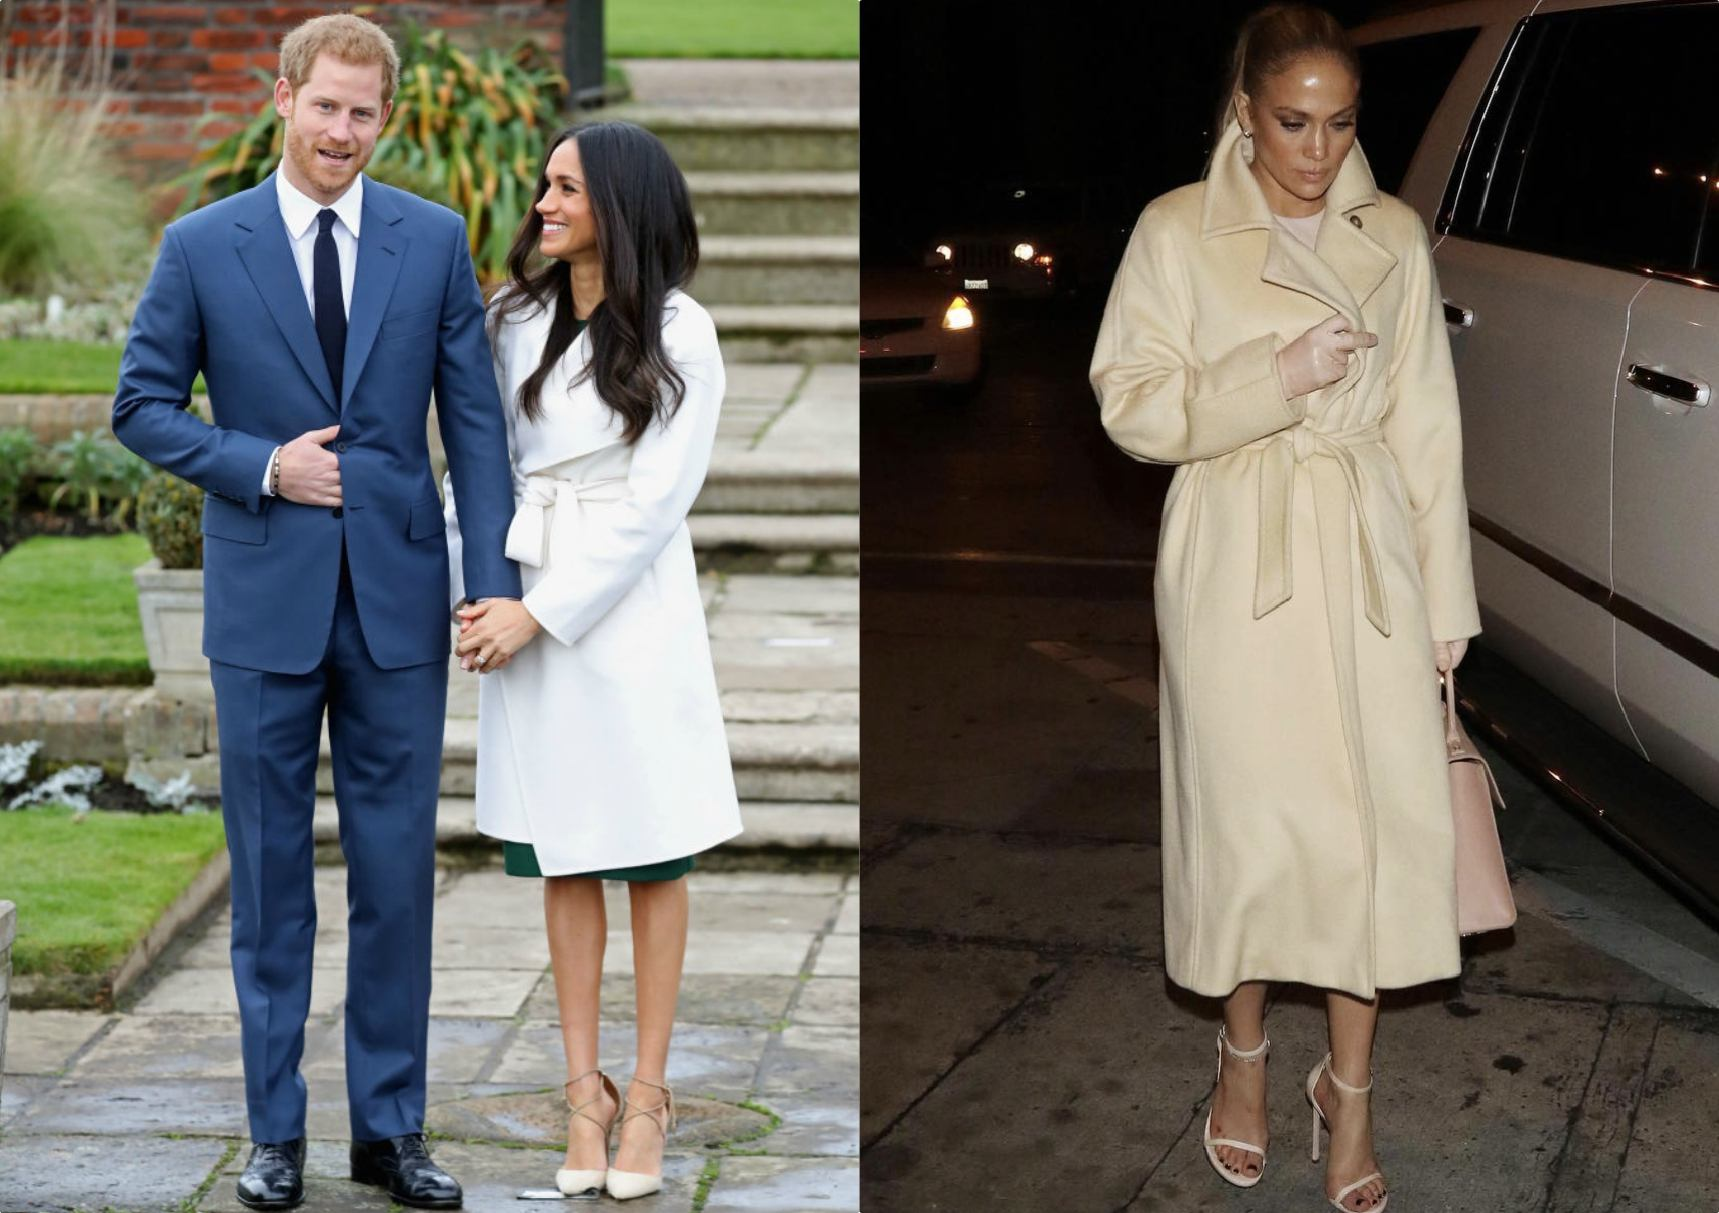 Celebrites Meghan Markle nudes (92 foto and video), Pussy, Is a cute, Boobs, butt 2015